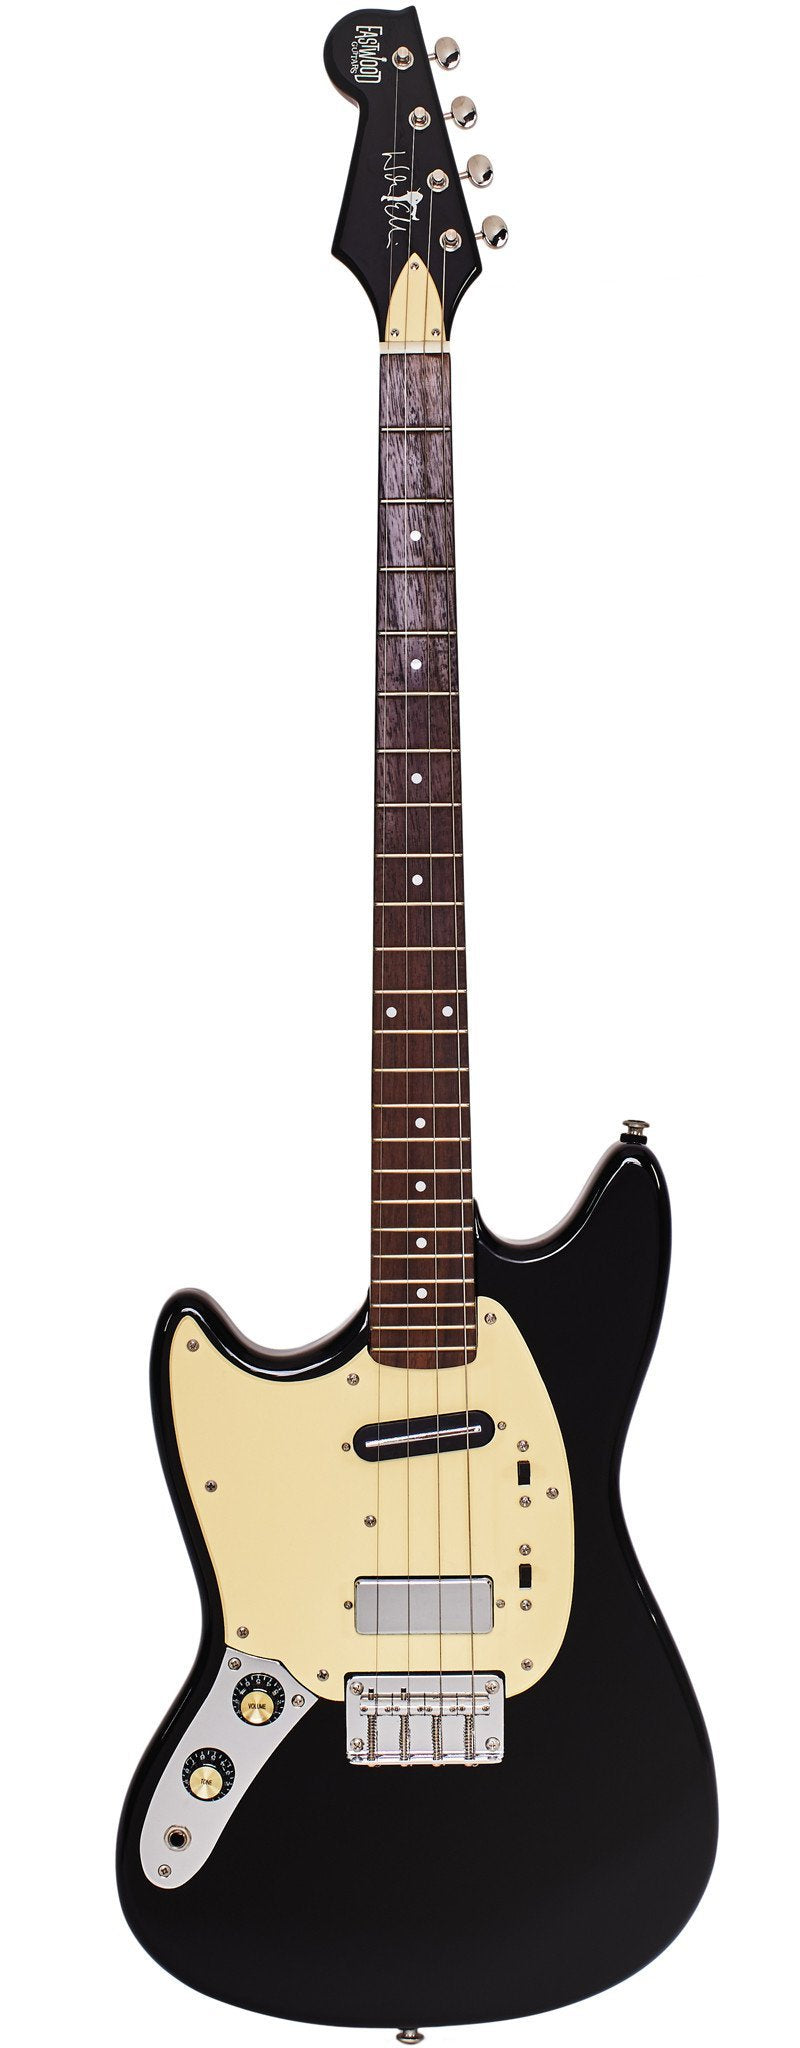 Eastwood Guitars Warren Ellis Tenor Baritone 2P Black LH Full Front